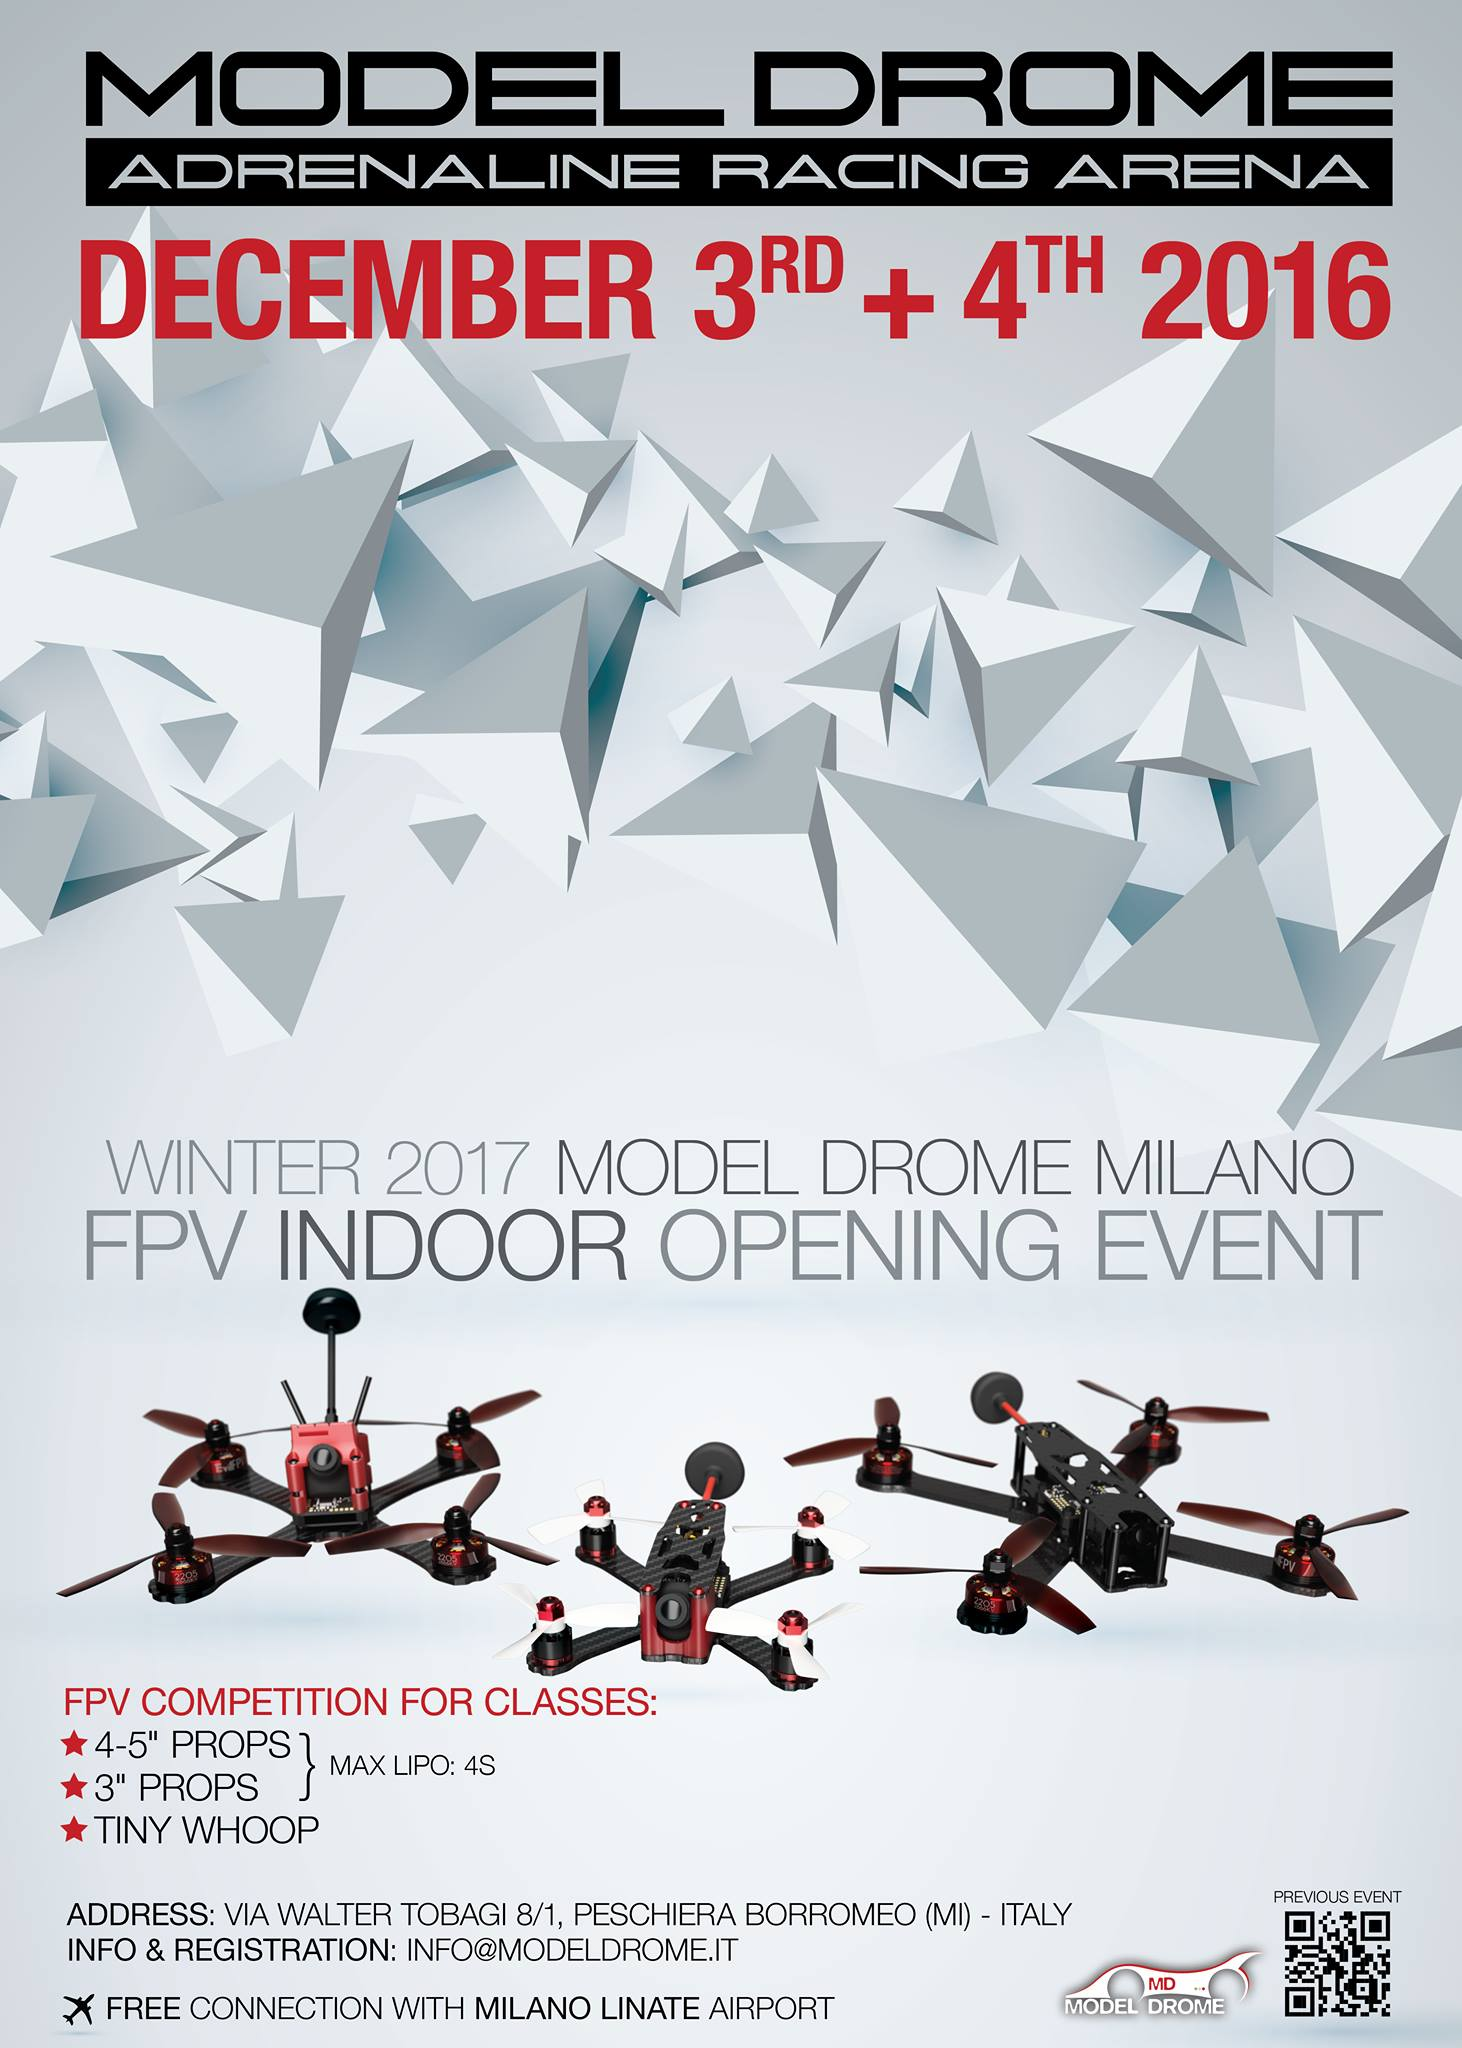 Model Drome Winter 2017 FPV Indoor Opening